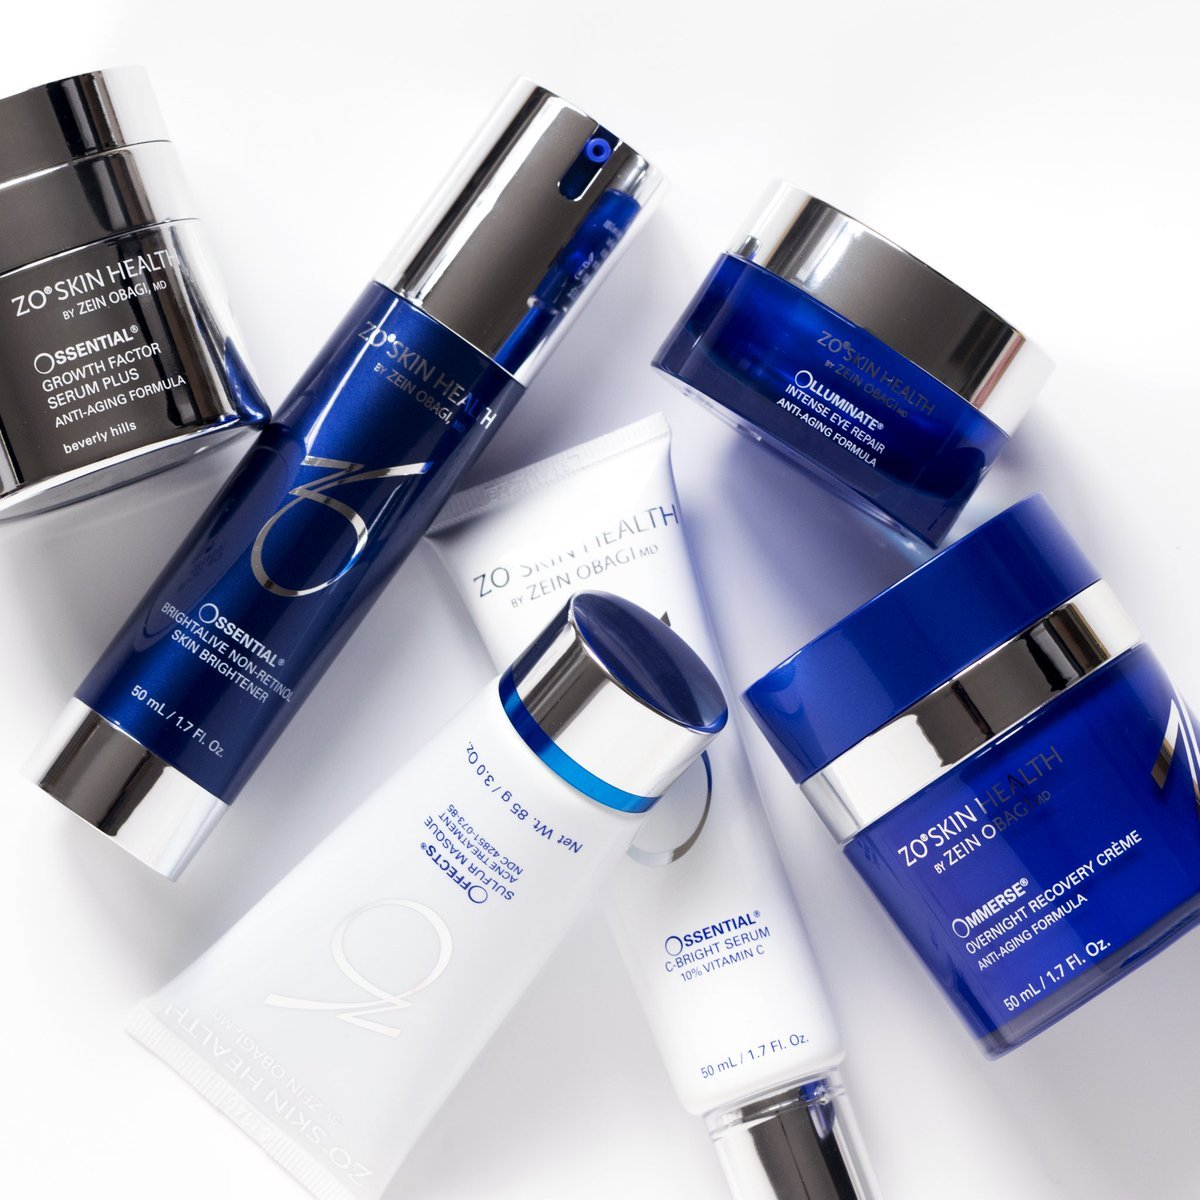 ZO Skin Care Beauty Products For Glowing Skin